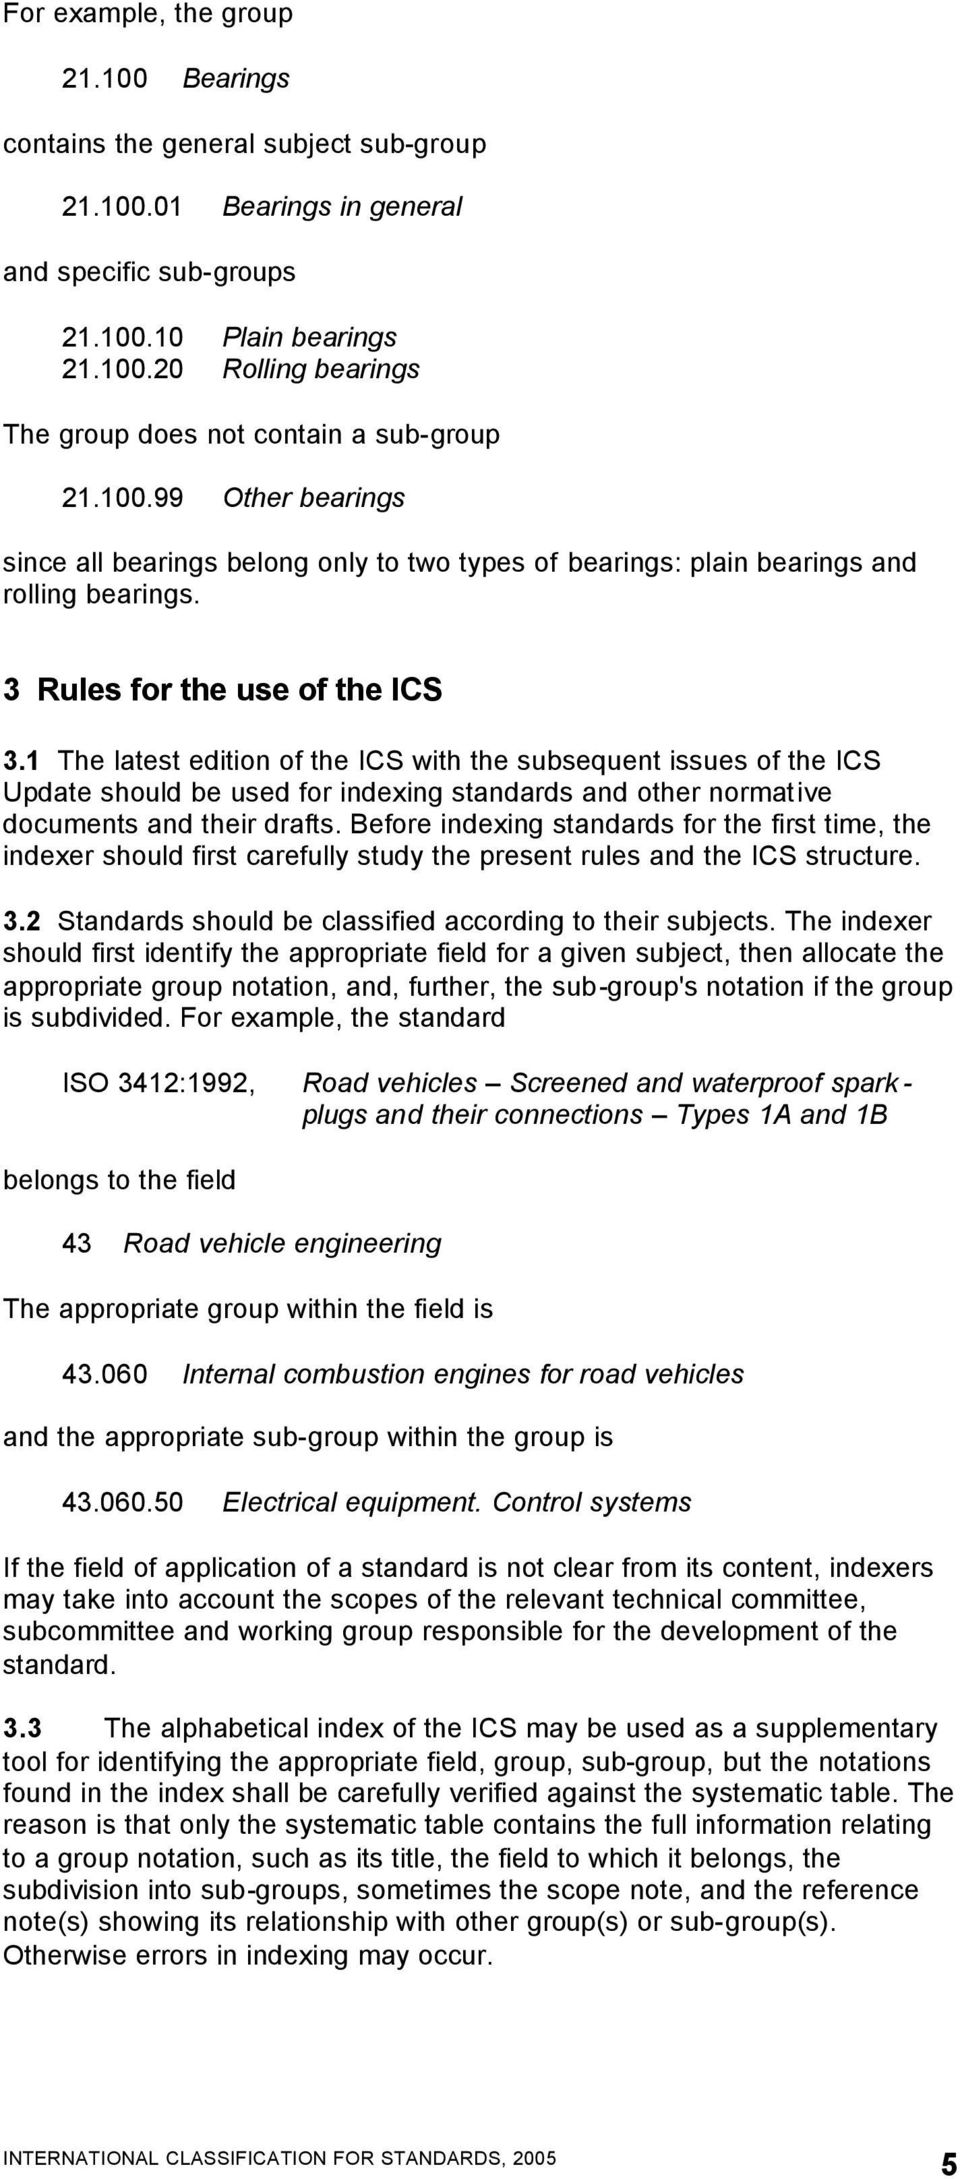 1 The latest edition of the ICS with the subsequent issues of the ICS Update should be used for indexing standards and other normative documents and their drafts.